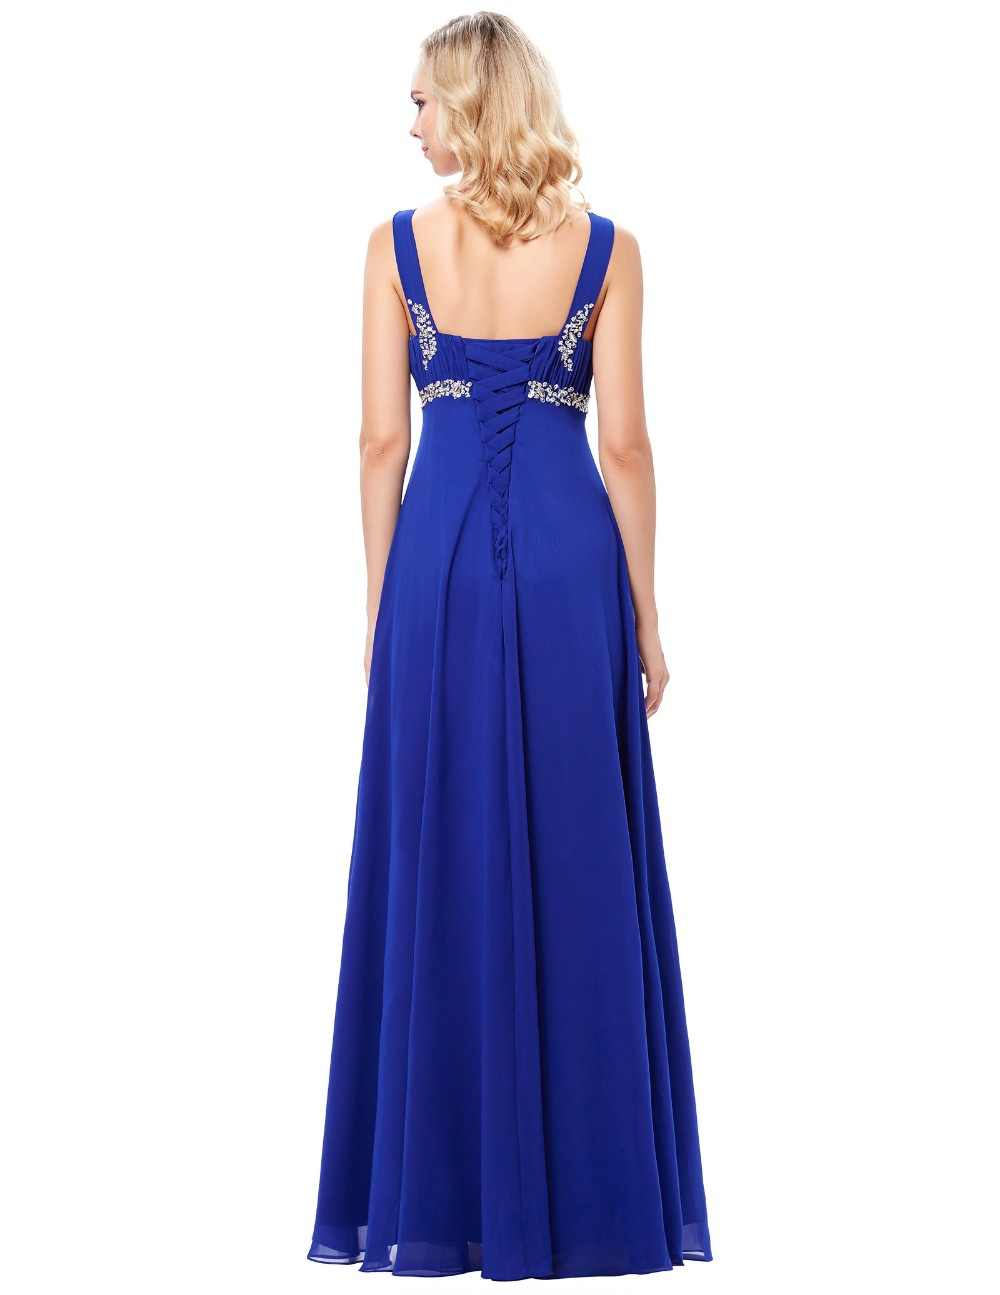 Grace Karin 2017 New Formal Blue Long Evening Ball Gown Party Prom Bridesmaid Dress Stock Size 4-16 GK000129-1